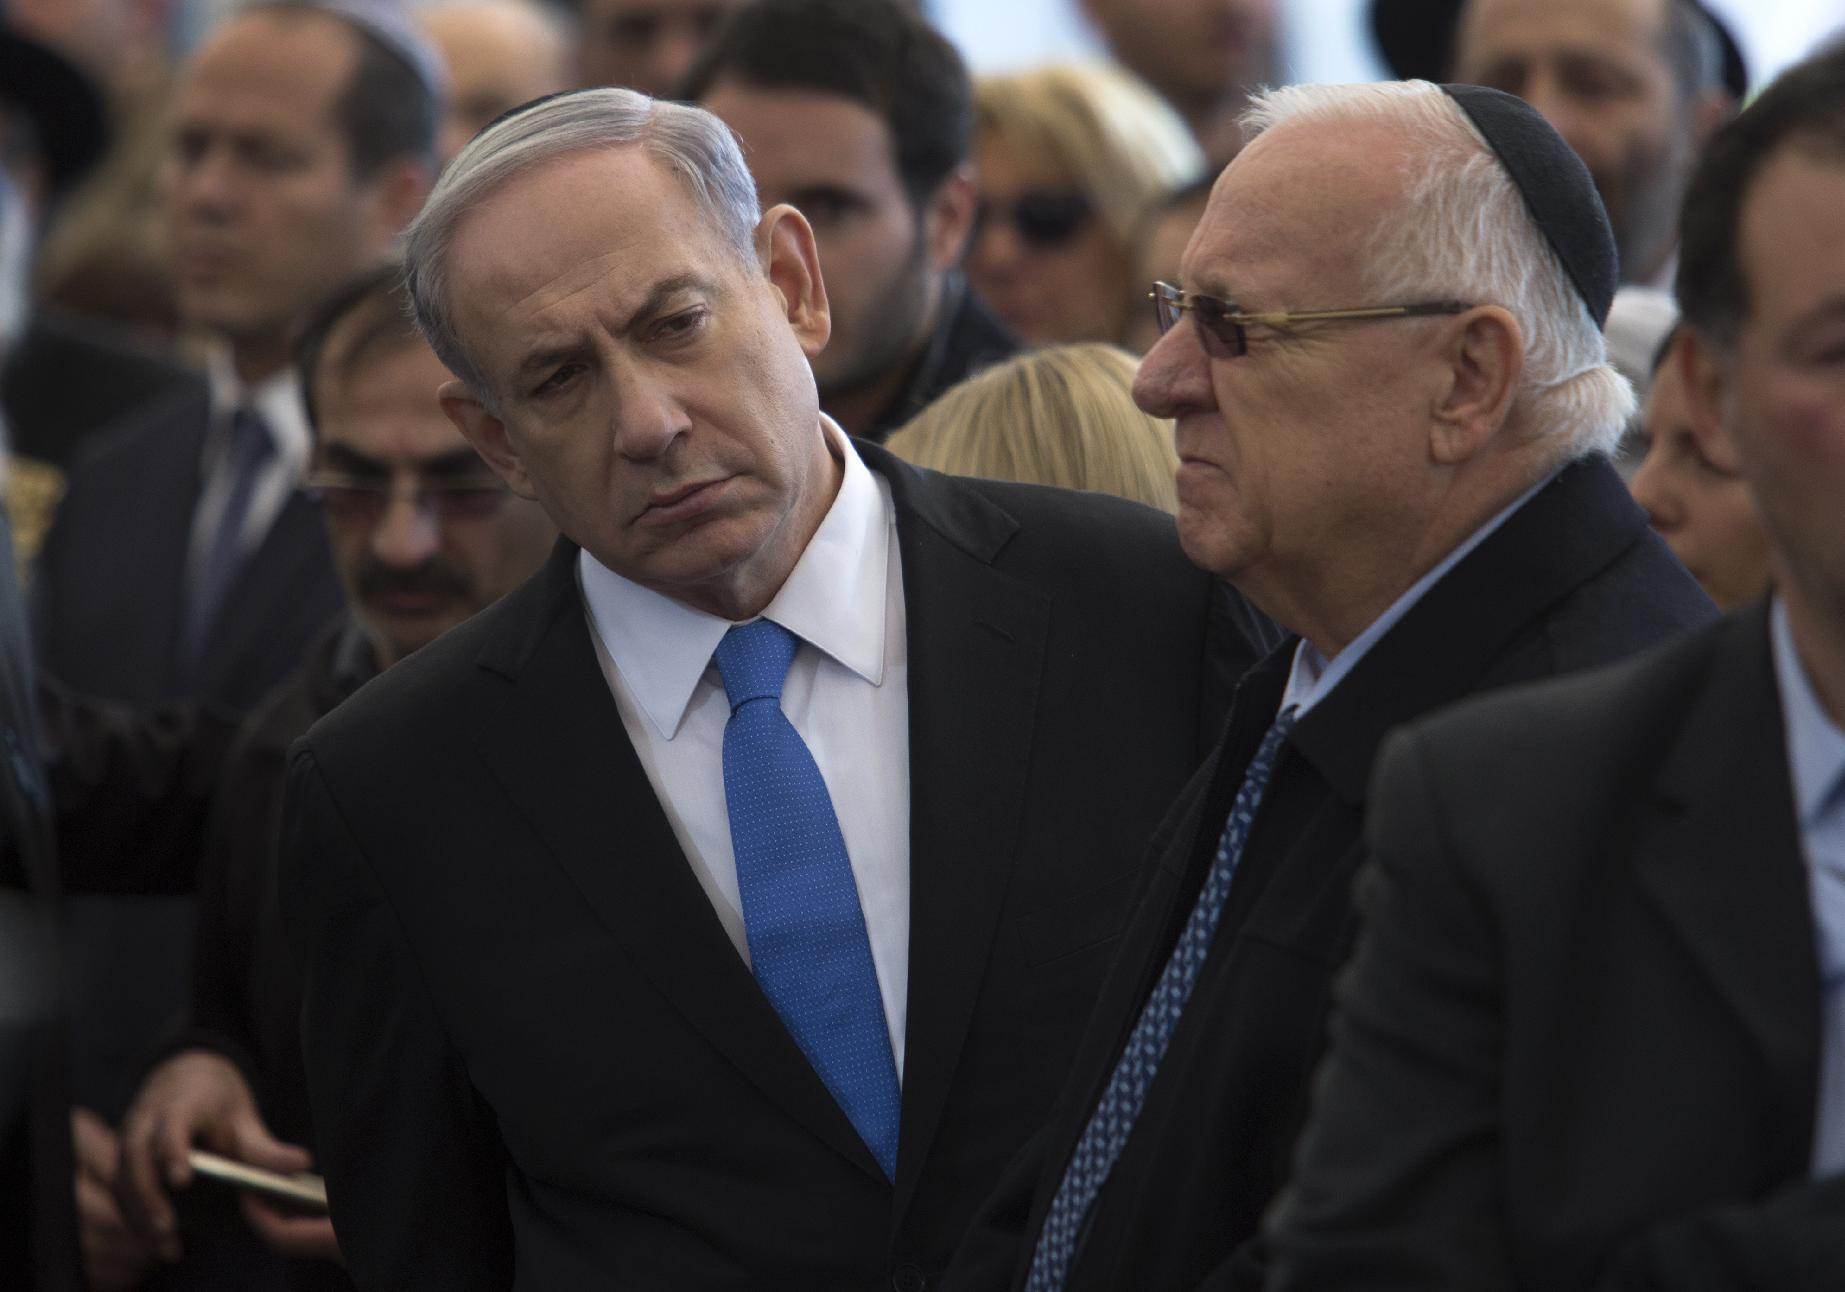 Benjamin Netanyahu leans out past Israeli president Reuven Rivlin at the funeral service in Jerusalem, on January 13, 2015, of the four Jews killed in an Islamist attack on a Kosher supermarket in Paris last week (AFP Photo/Jim Hollander)